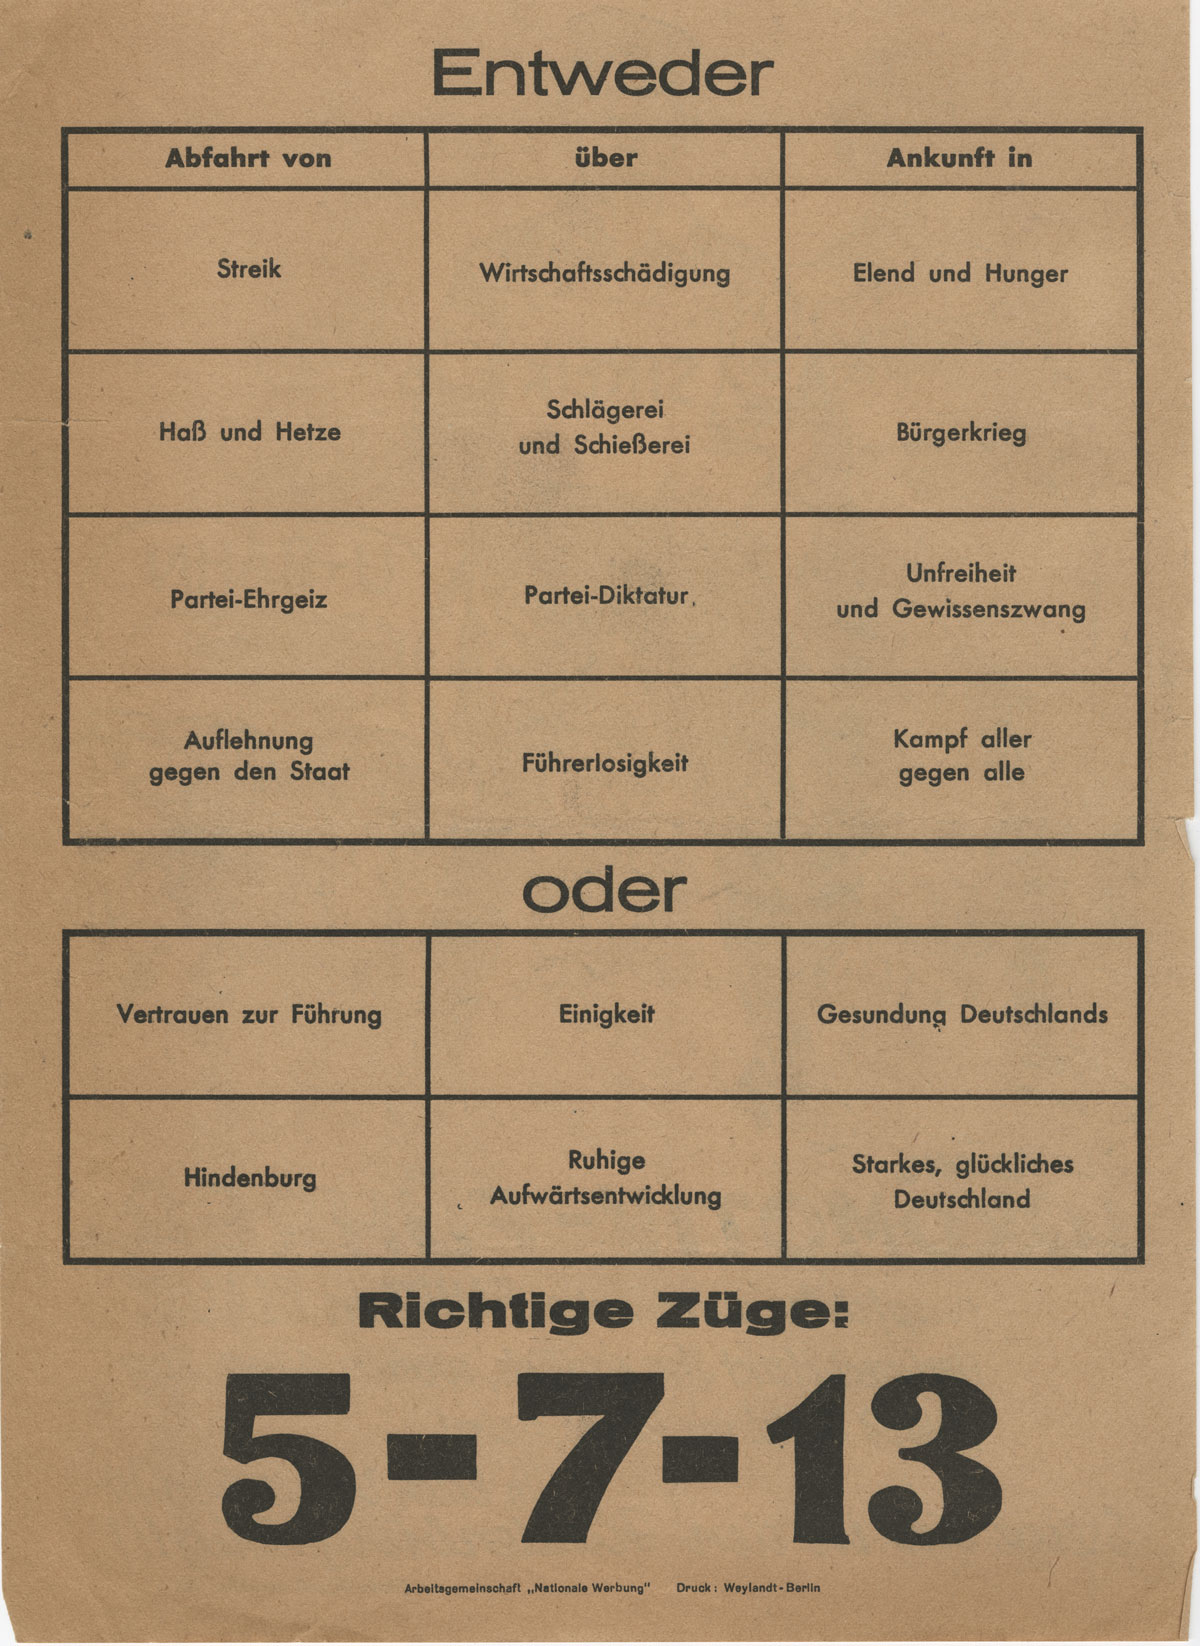 """Either / or"" sheet from the 1932 German elections ephemera collection."